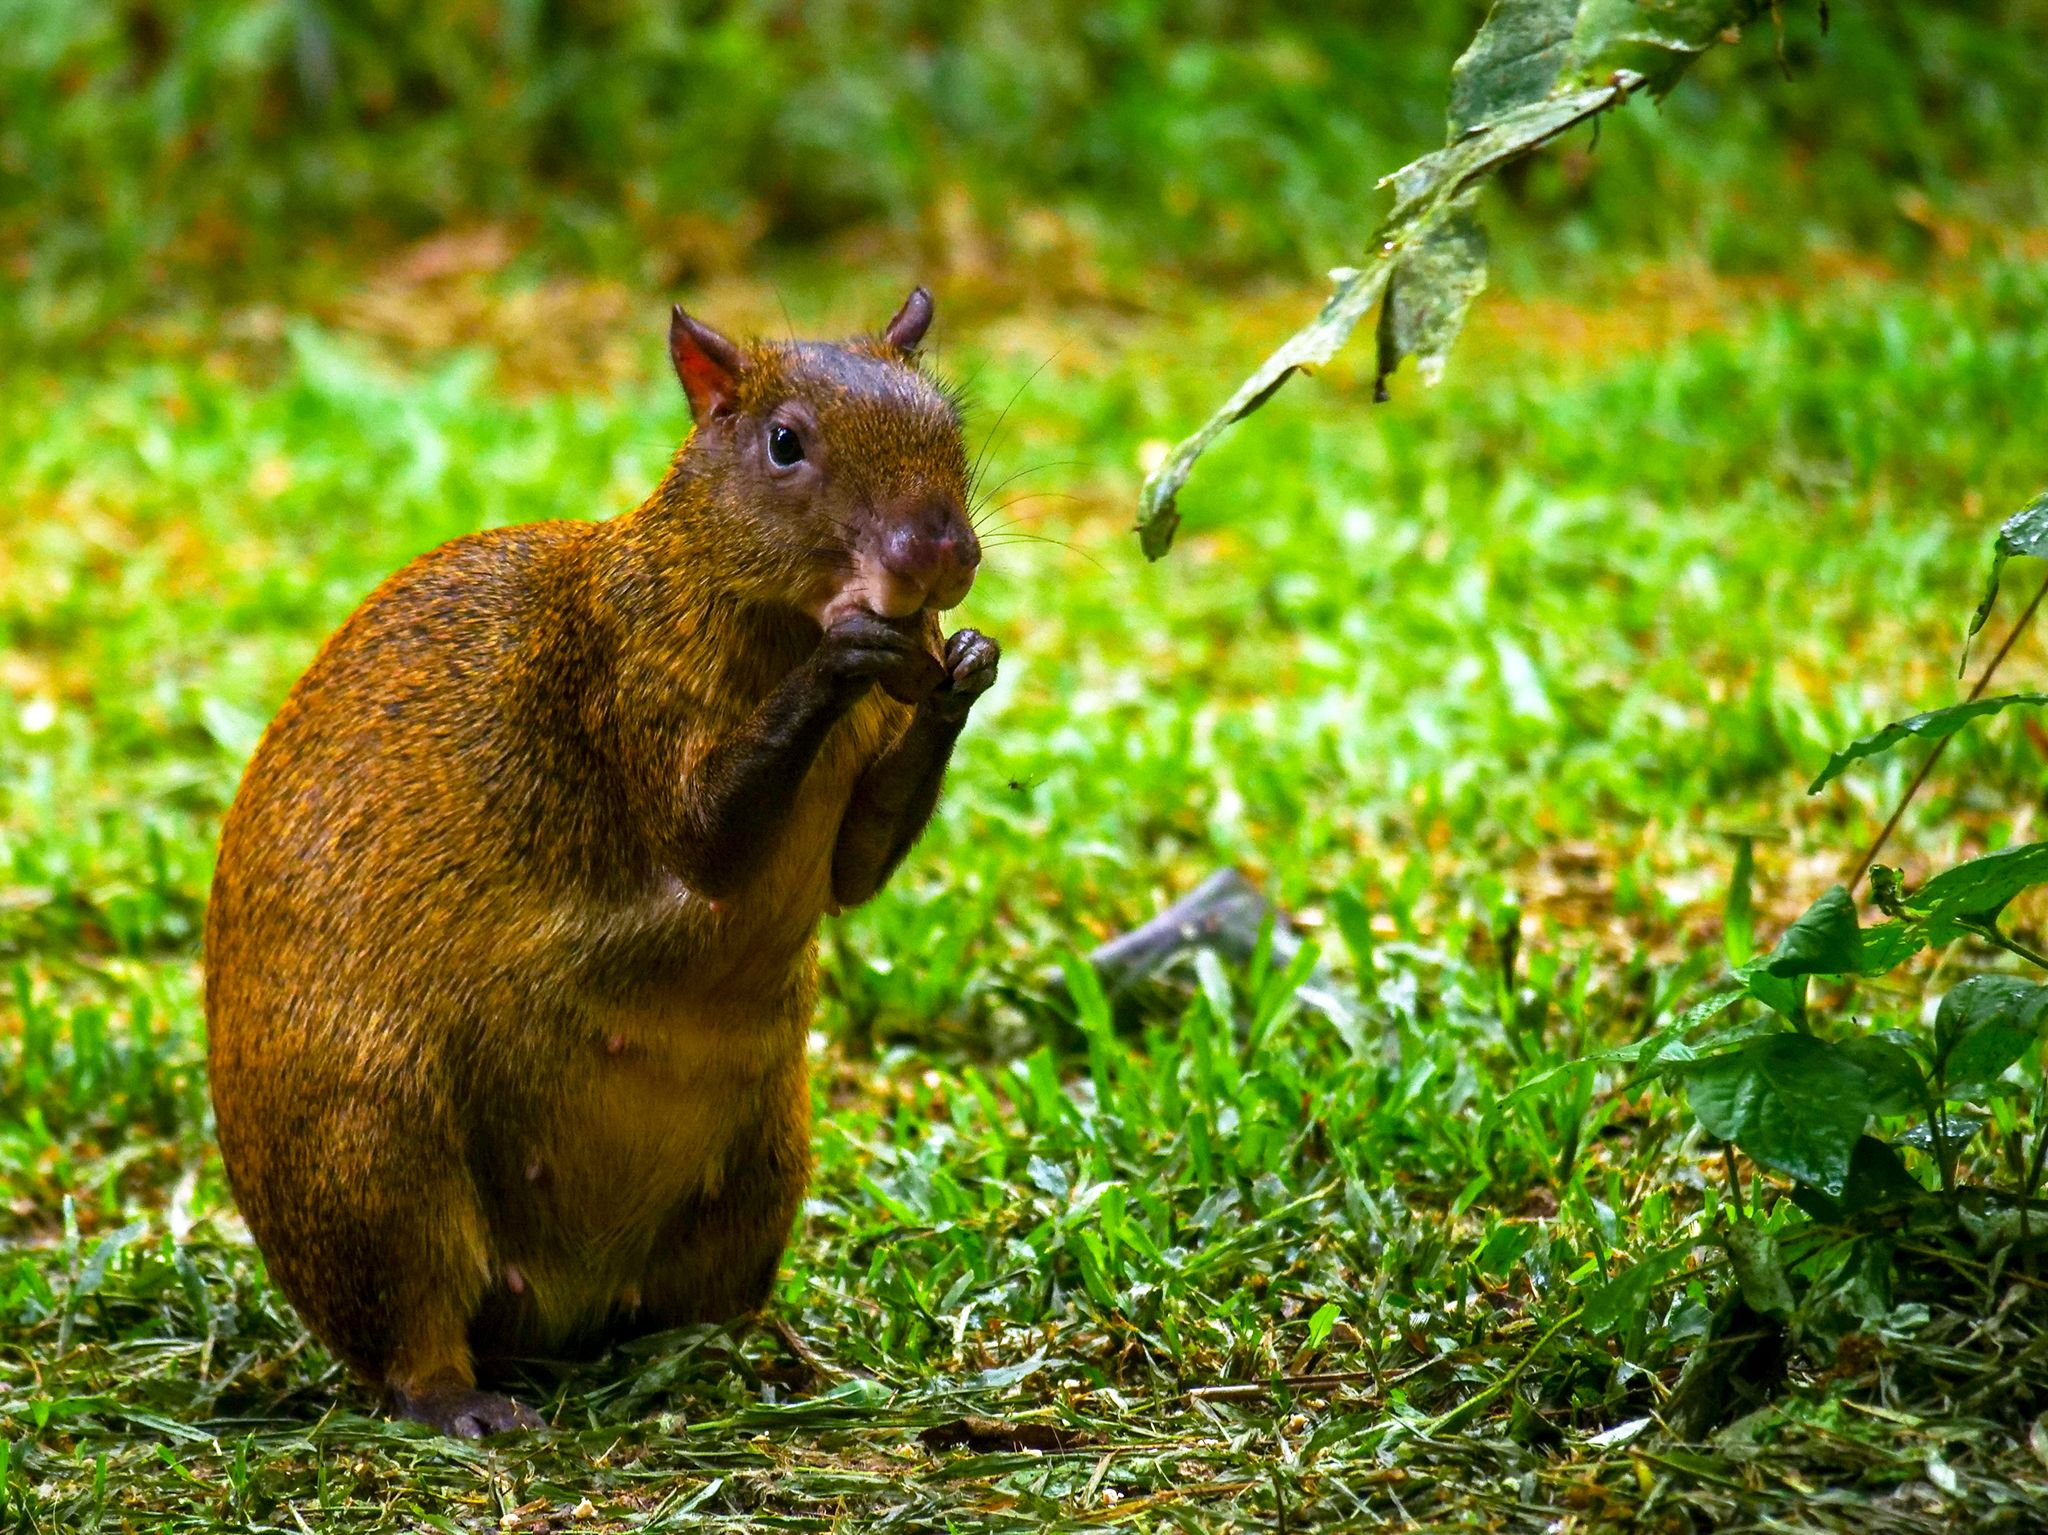 Tambopata, Madre De Dios, Peru:  Agouti feeding on nuts. This image is from Wild Peru: Andes... [Photo of the day - November 2018]